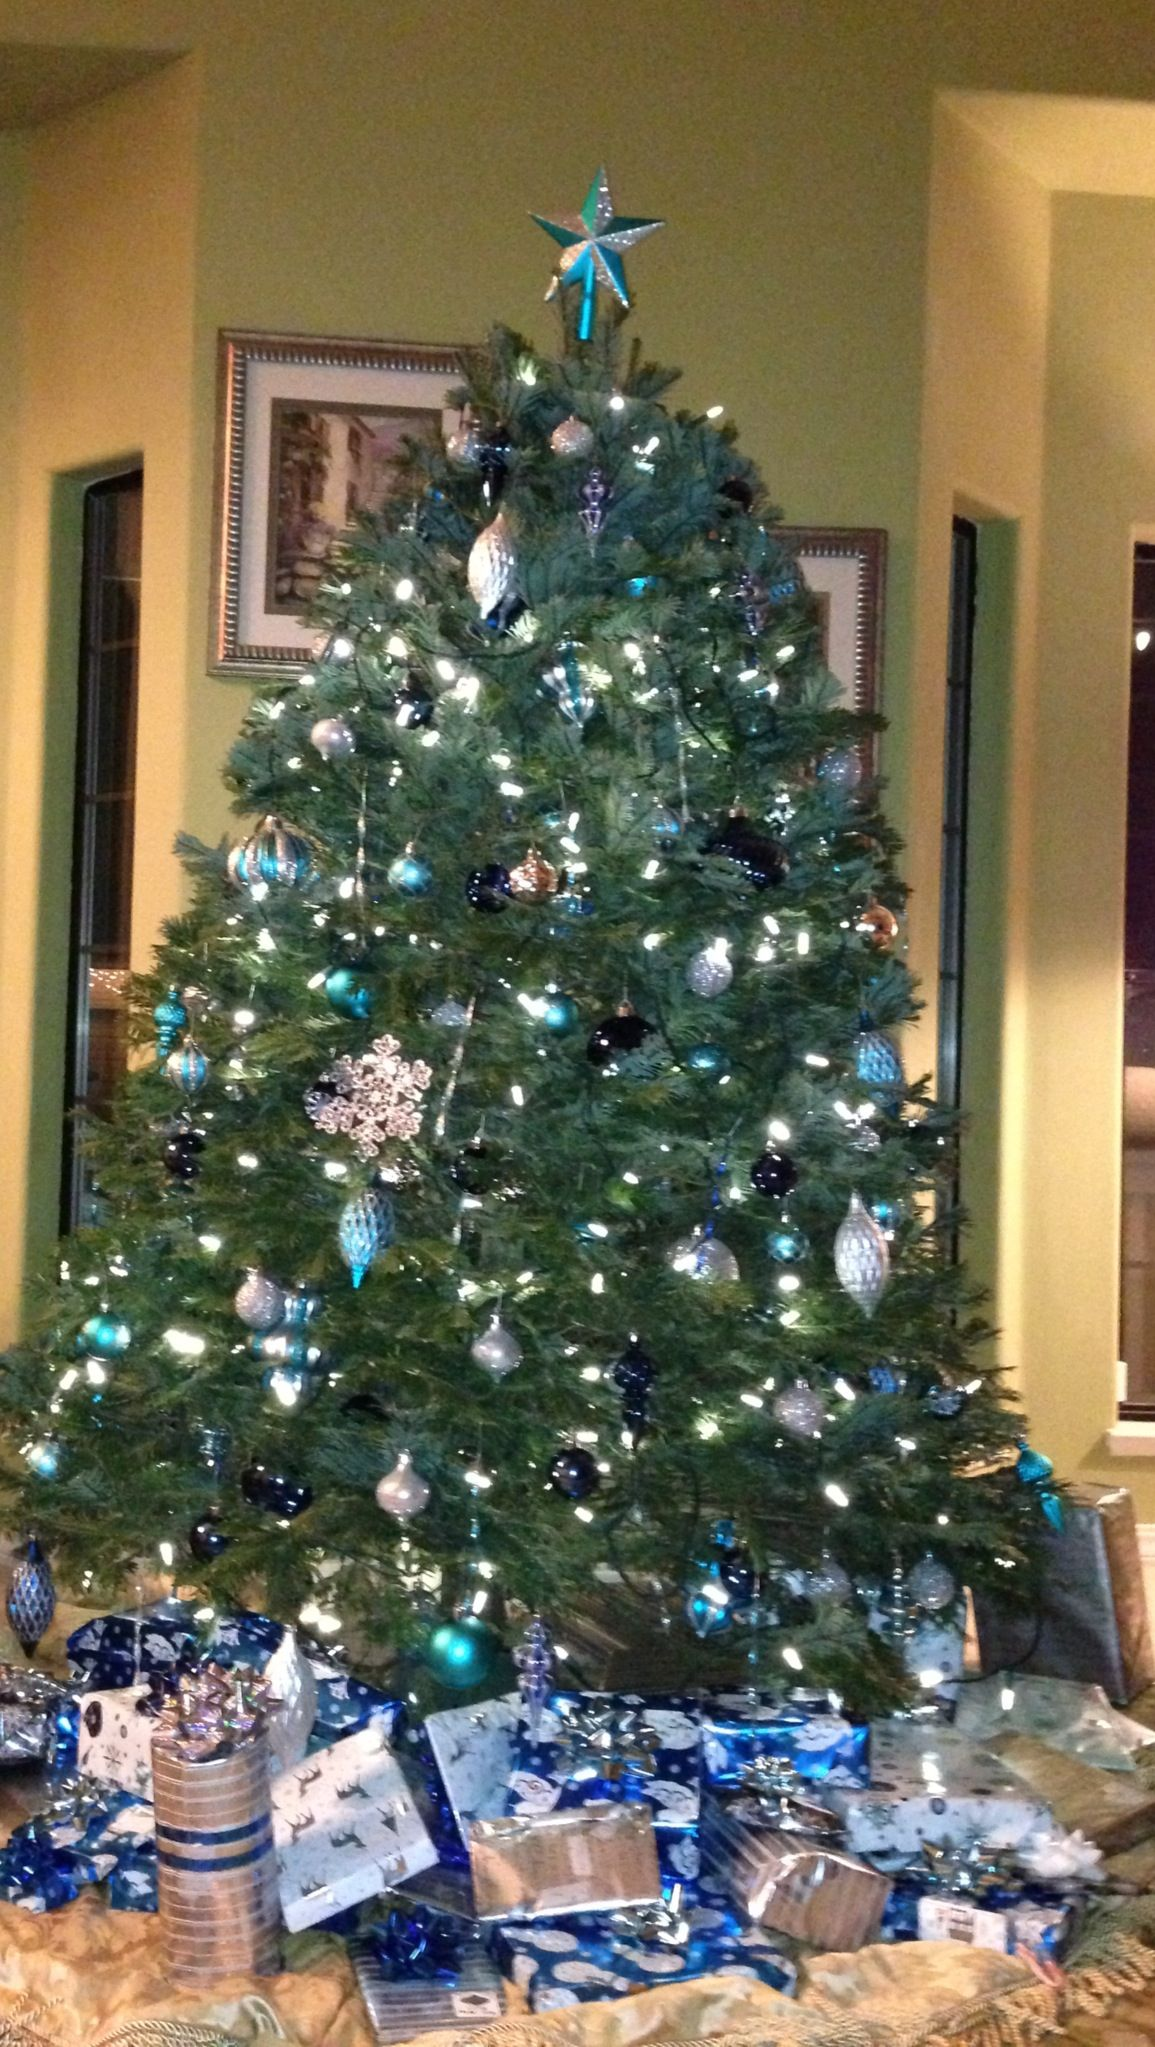 christmas tree decorated with cobalt blue aqua and silver martha stewart decorations from home depot - Martha Stewart Christmas Tree Decorations